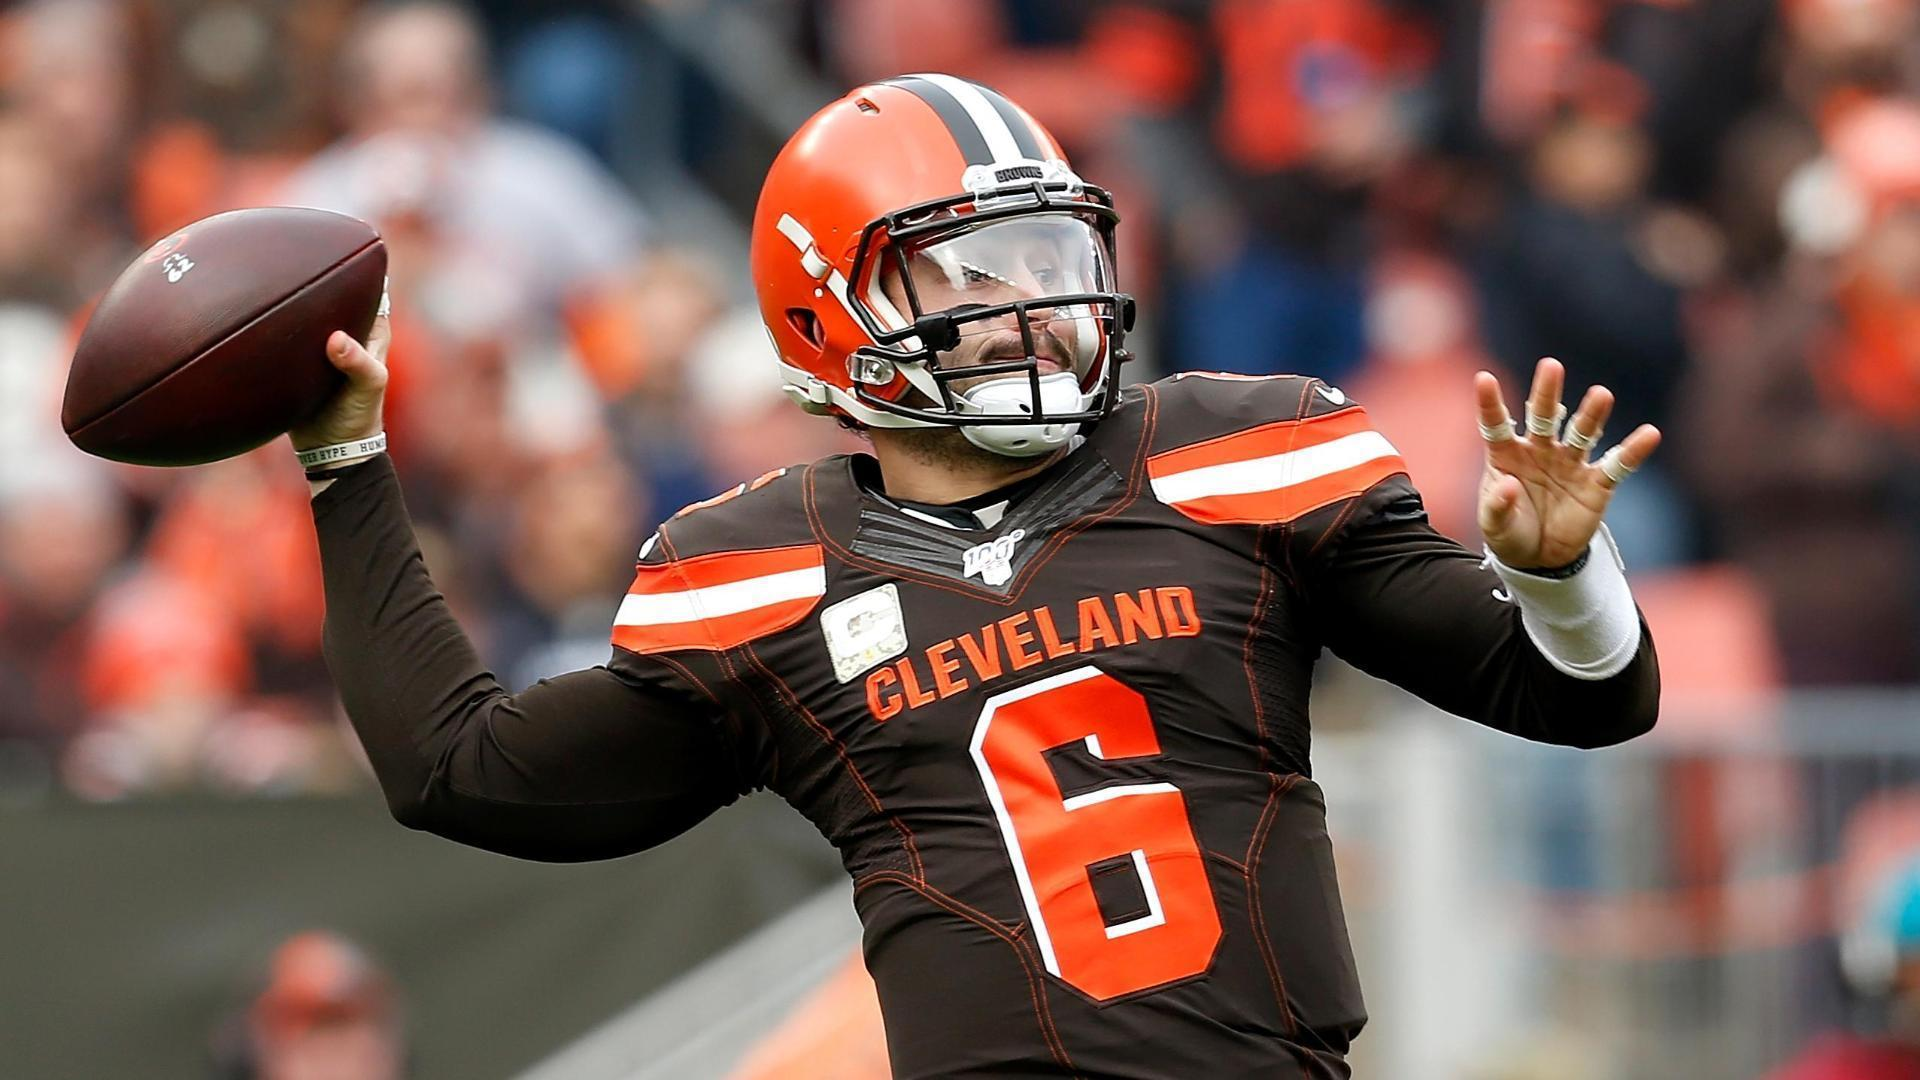 Mayfield throws 2 TD passes as Browns snap 4-game skid